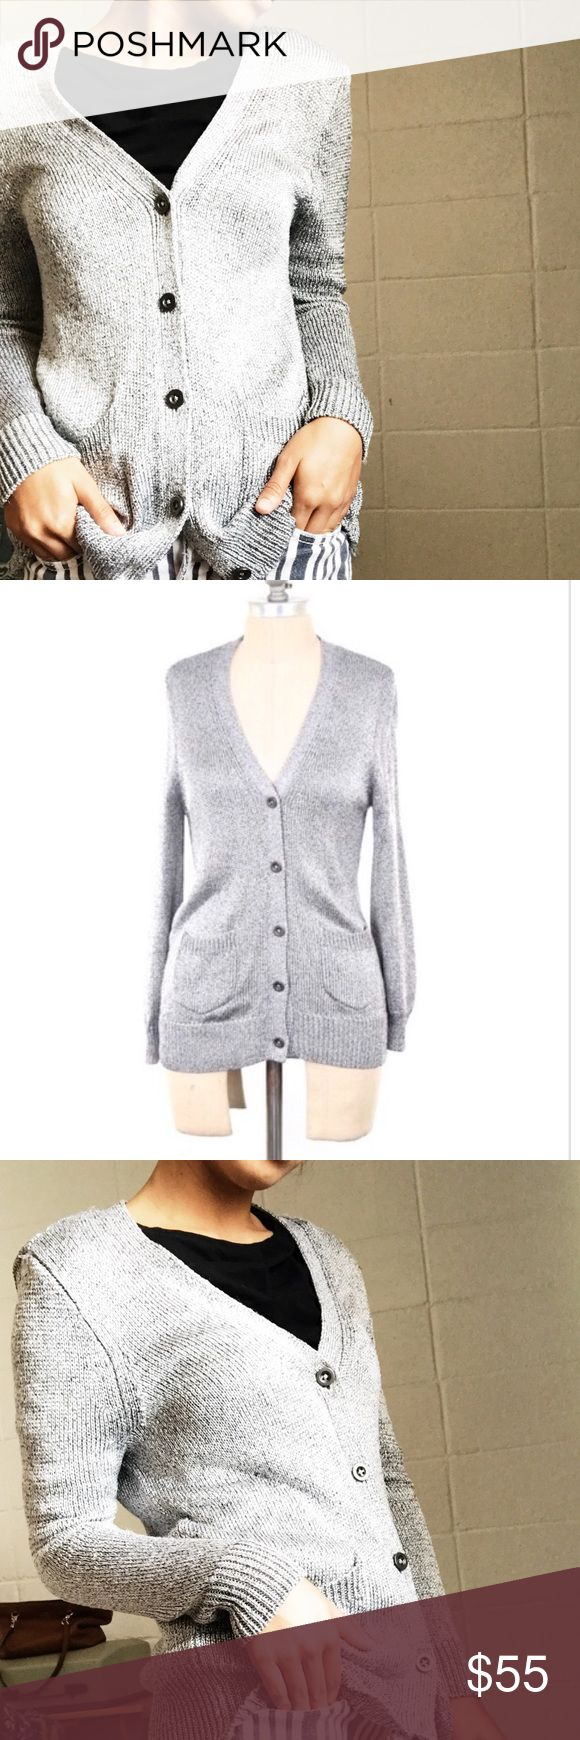 ✨SALE✨ Silver Cardigan By Madewell NWOT Medium Silver Cardigan by Madewell  Fabric: Rayon | Polyamaide (shiny material) Features two front pockets with buttons.  It can also fit a small, but won't be as fit. Taking only reasonable offers! Madewell Sweaters Cardigans